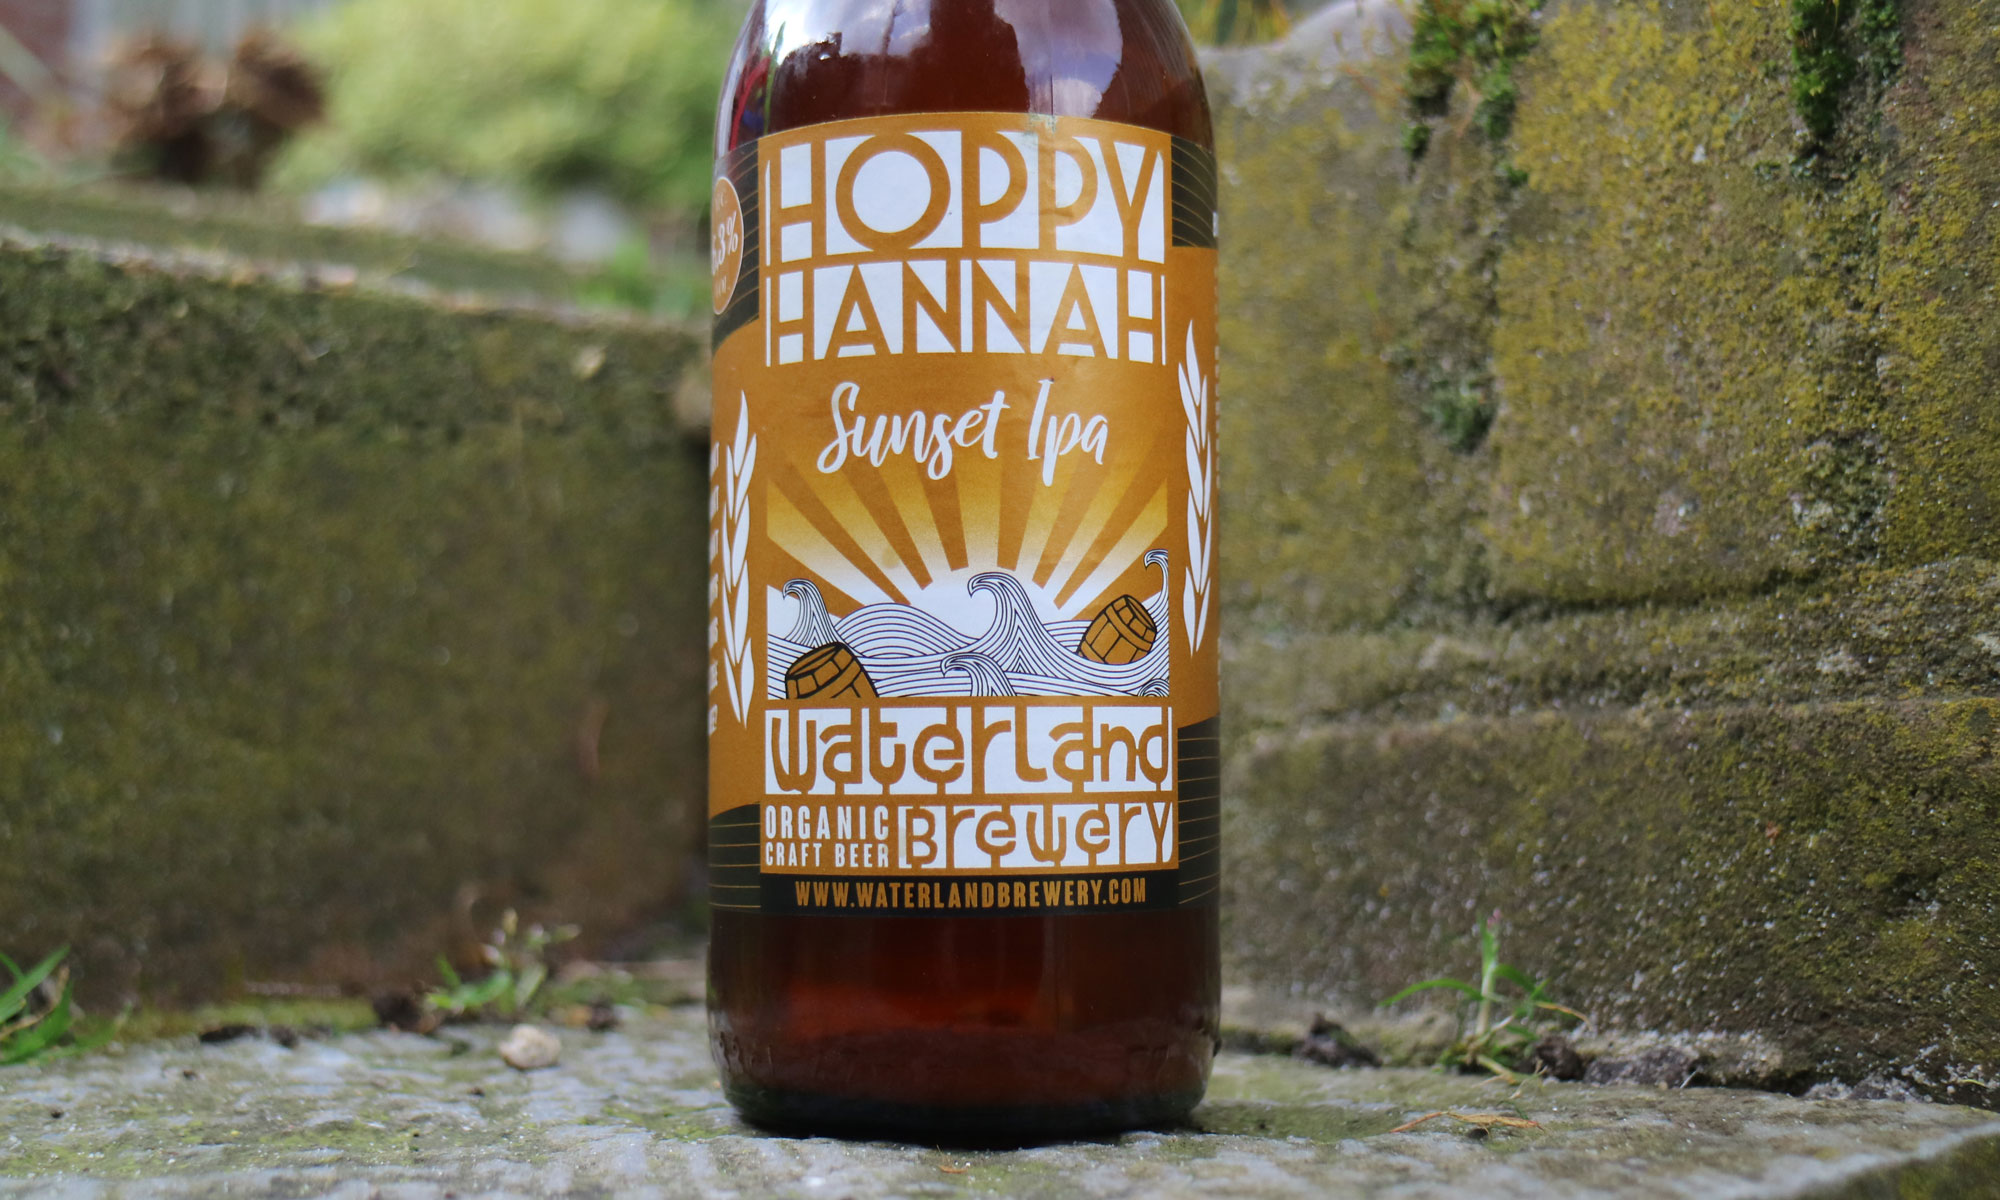 Hoppy Hannah gebrouwen door Waterland brewery